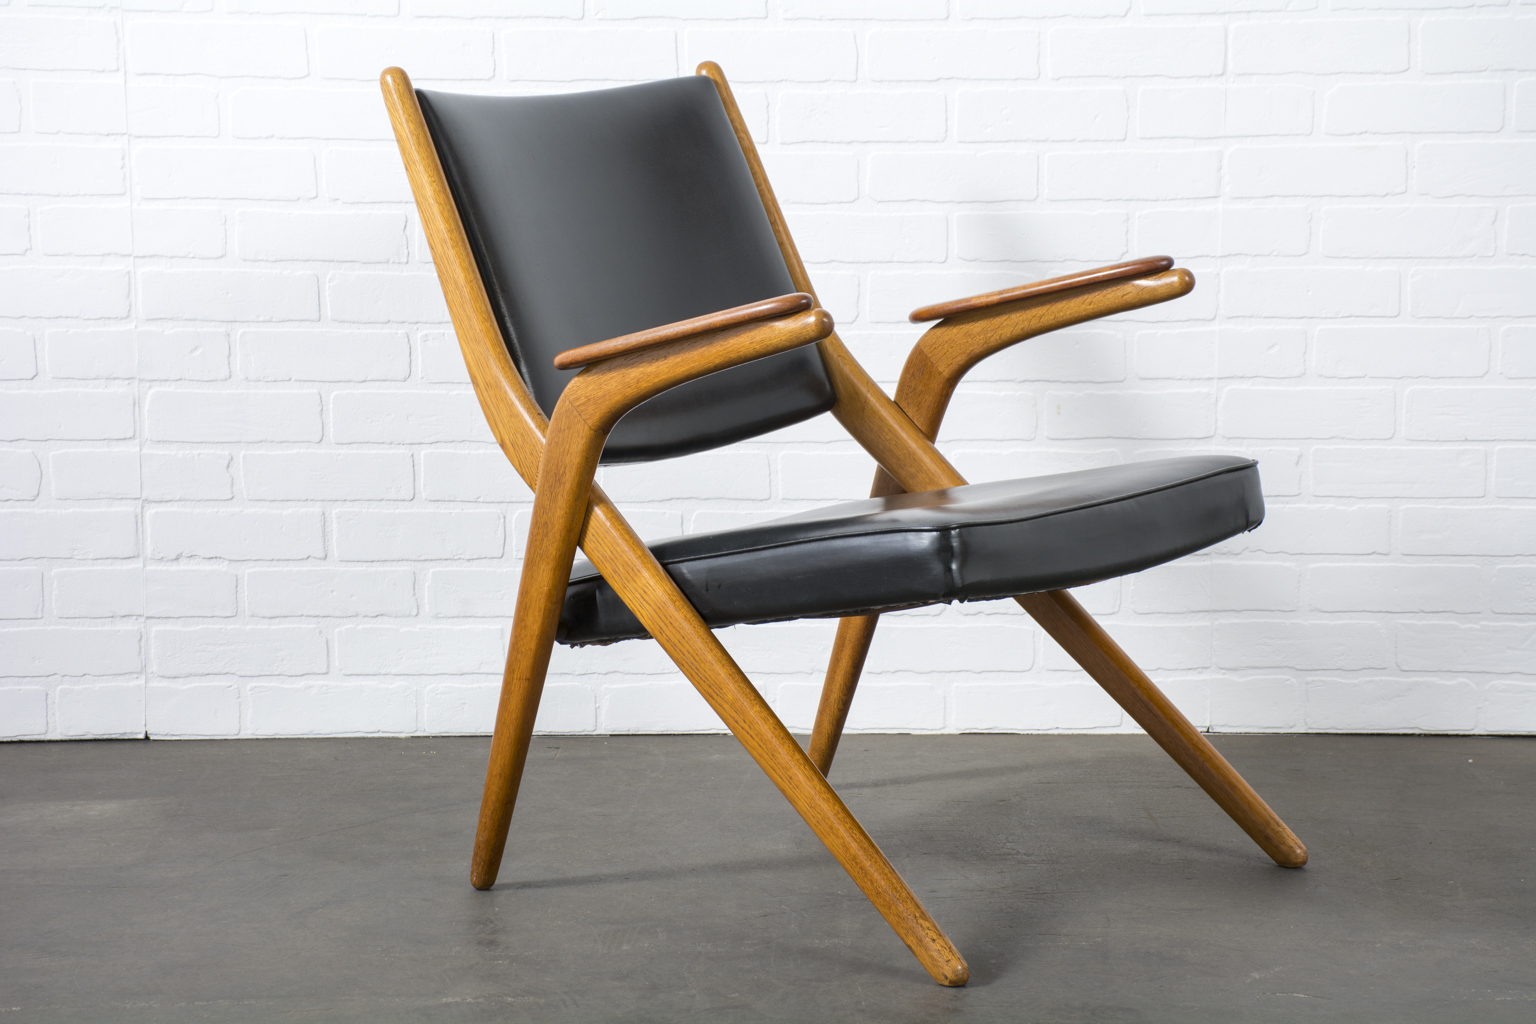 Vintage Mid-Century Lounge Chair